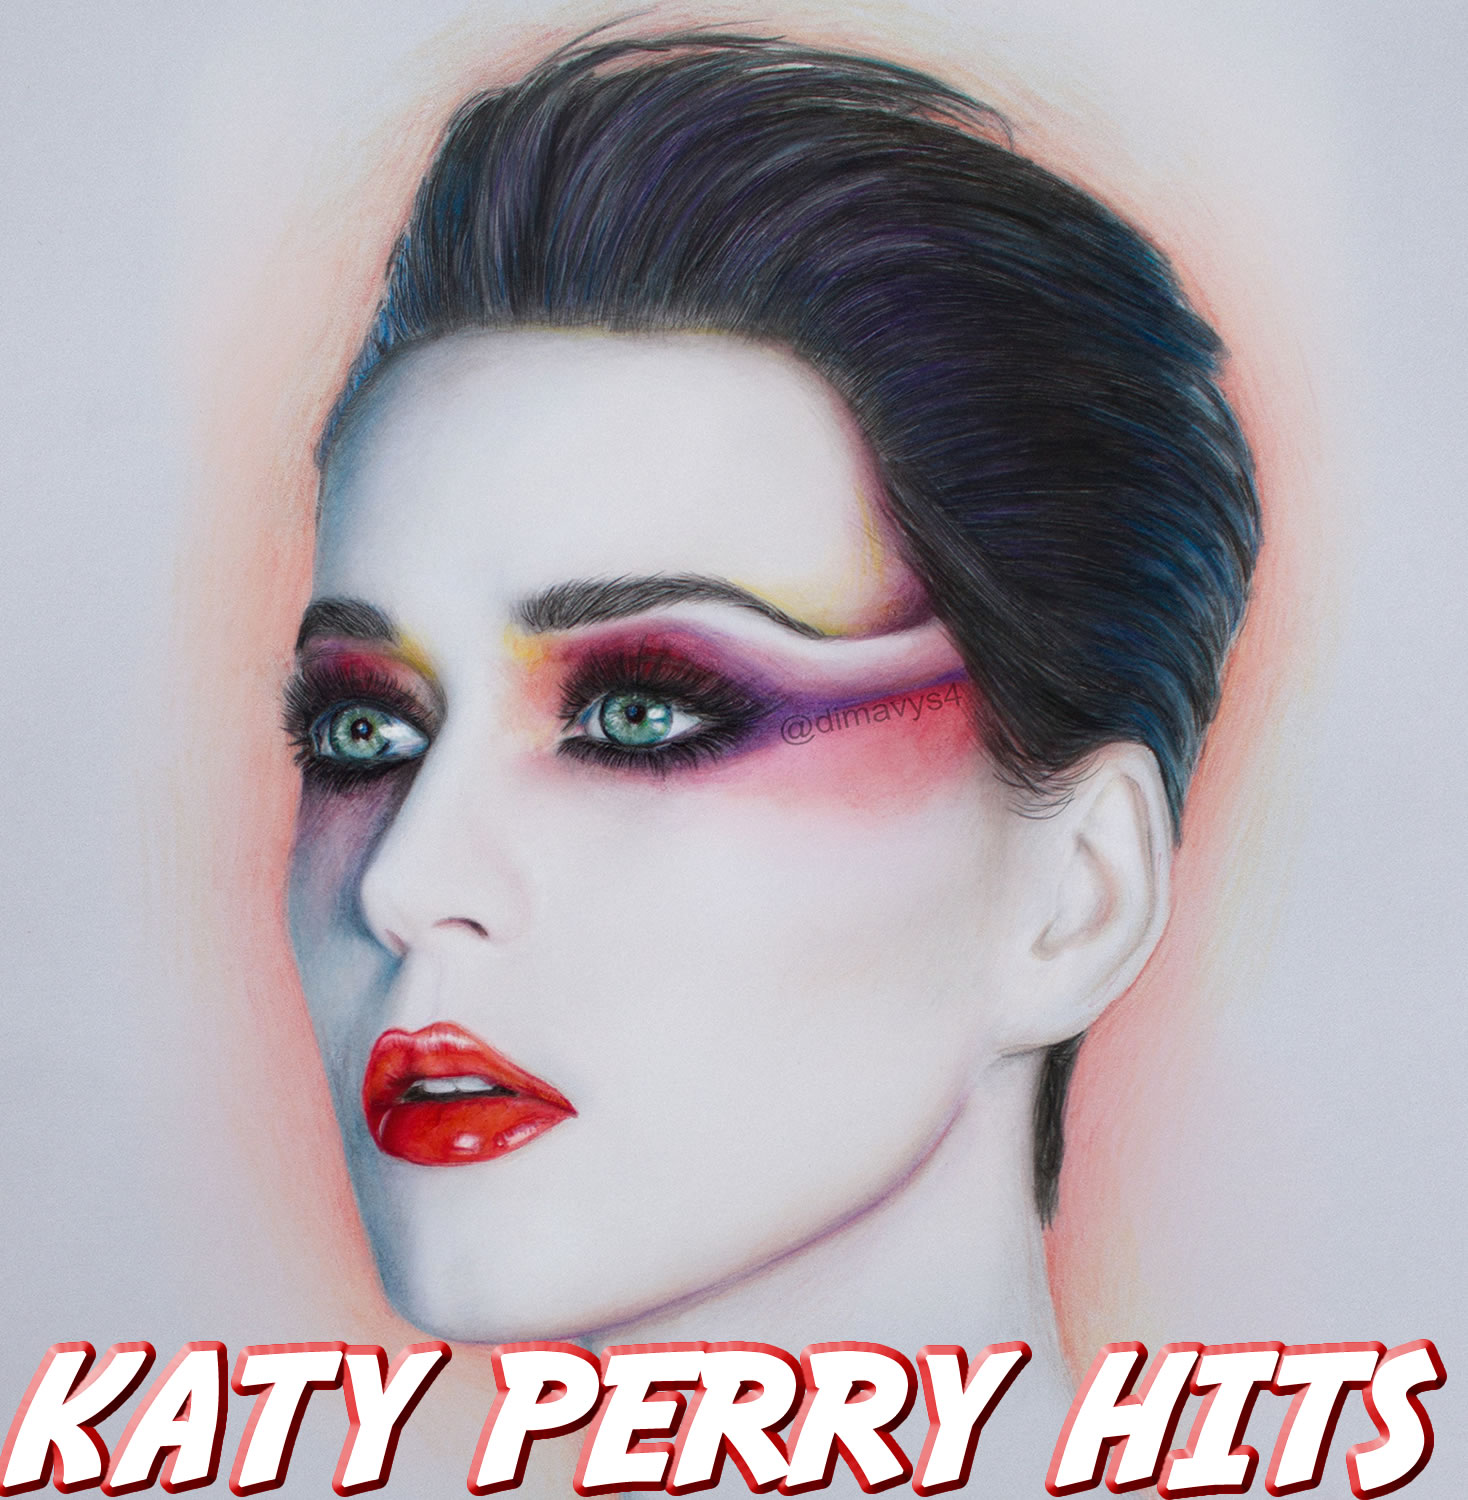 Vocal-Star Katy Perry Hits